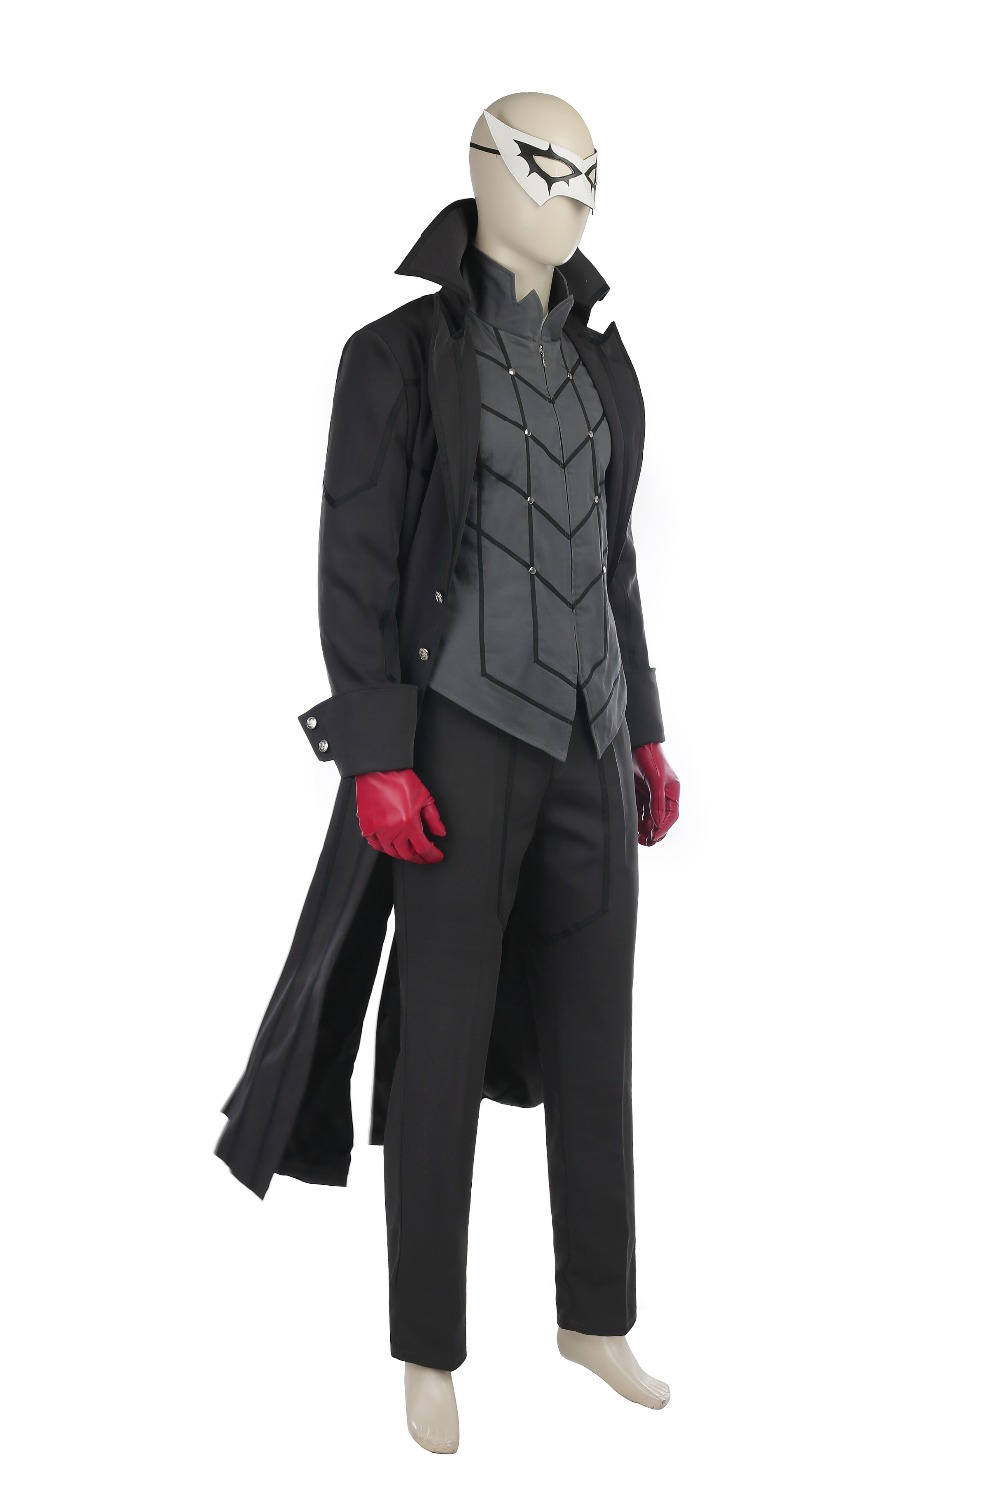 Persona 5 Cosplay Costume Ren Amamiya Cosplay Joker Anime Cosplay Full Set Uniform Halloween Carnival Party Costume Customized